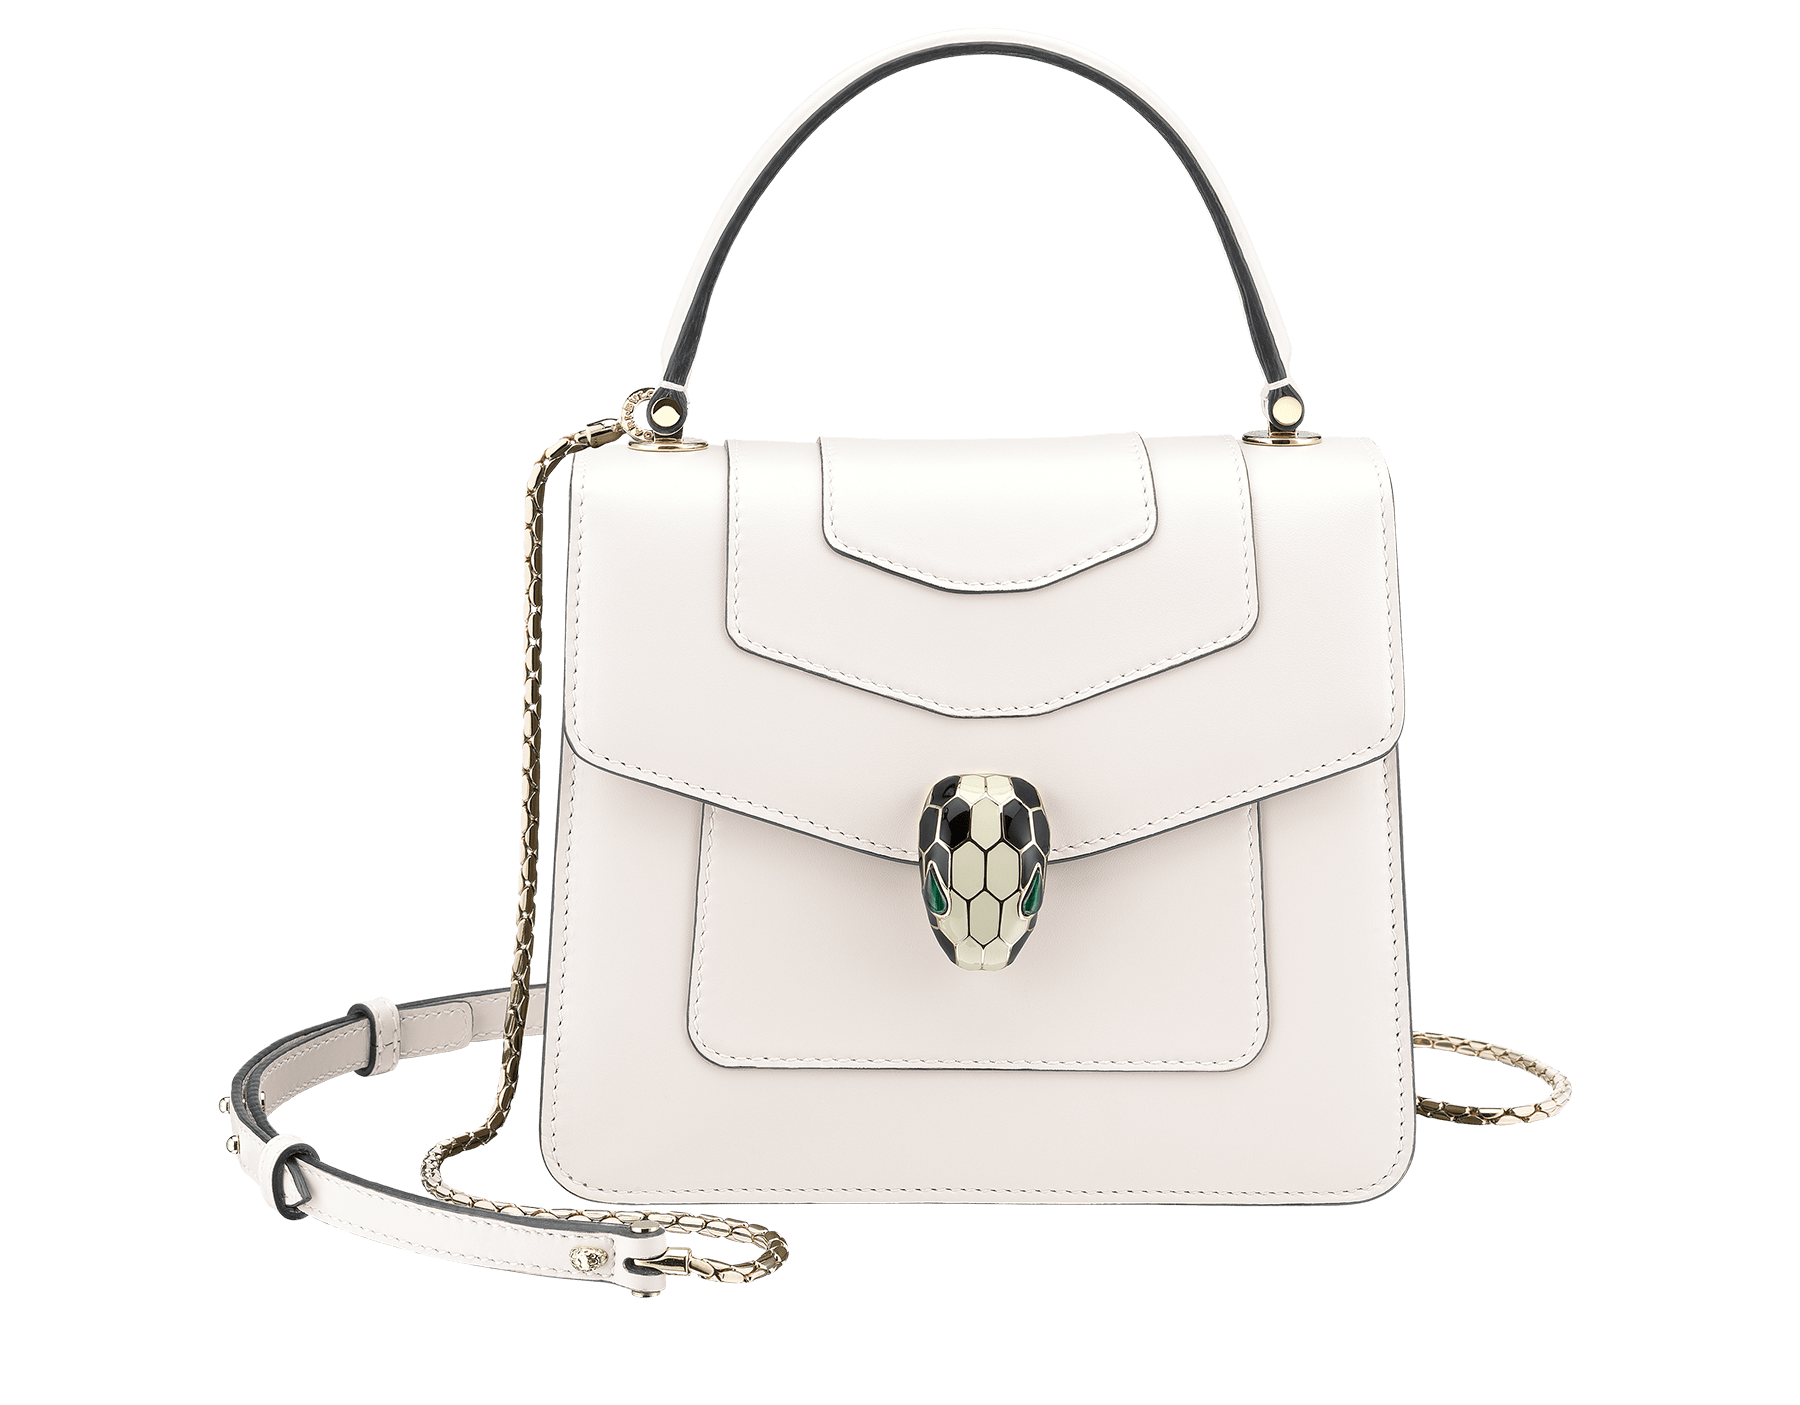 """Serpenti Forever"" crossbody bag in crystal rose calf leather. Iconic snakehead closure in light gold plated brass enriched with black and white enamel and green malachite eyes 752-CLa image 1"